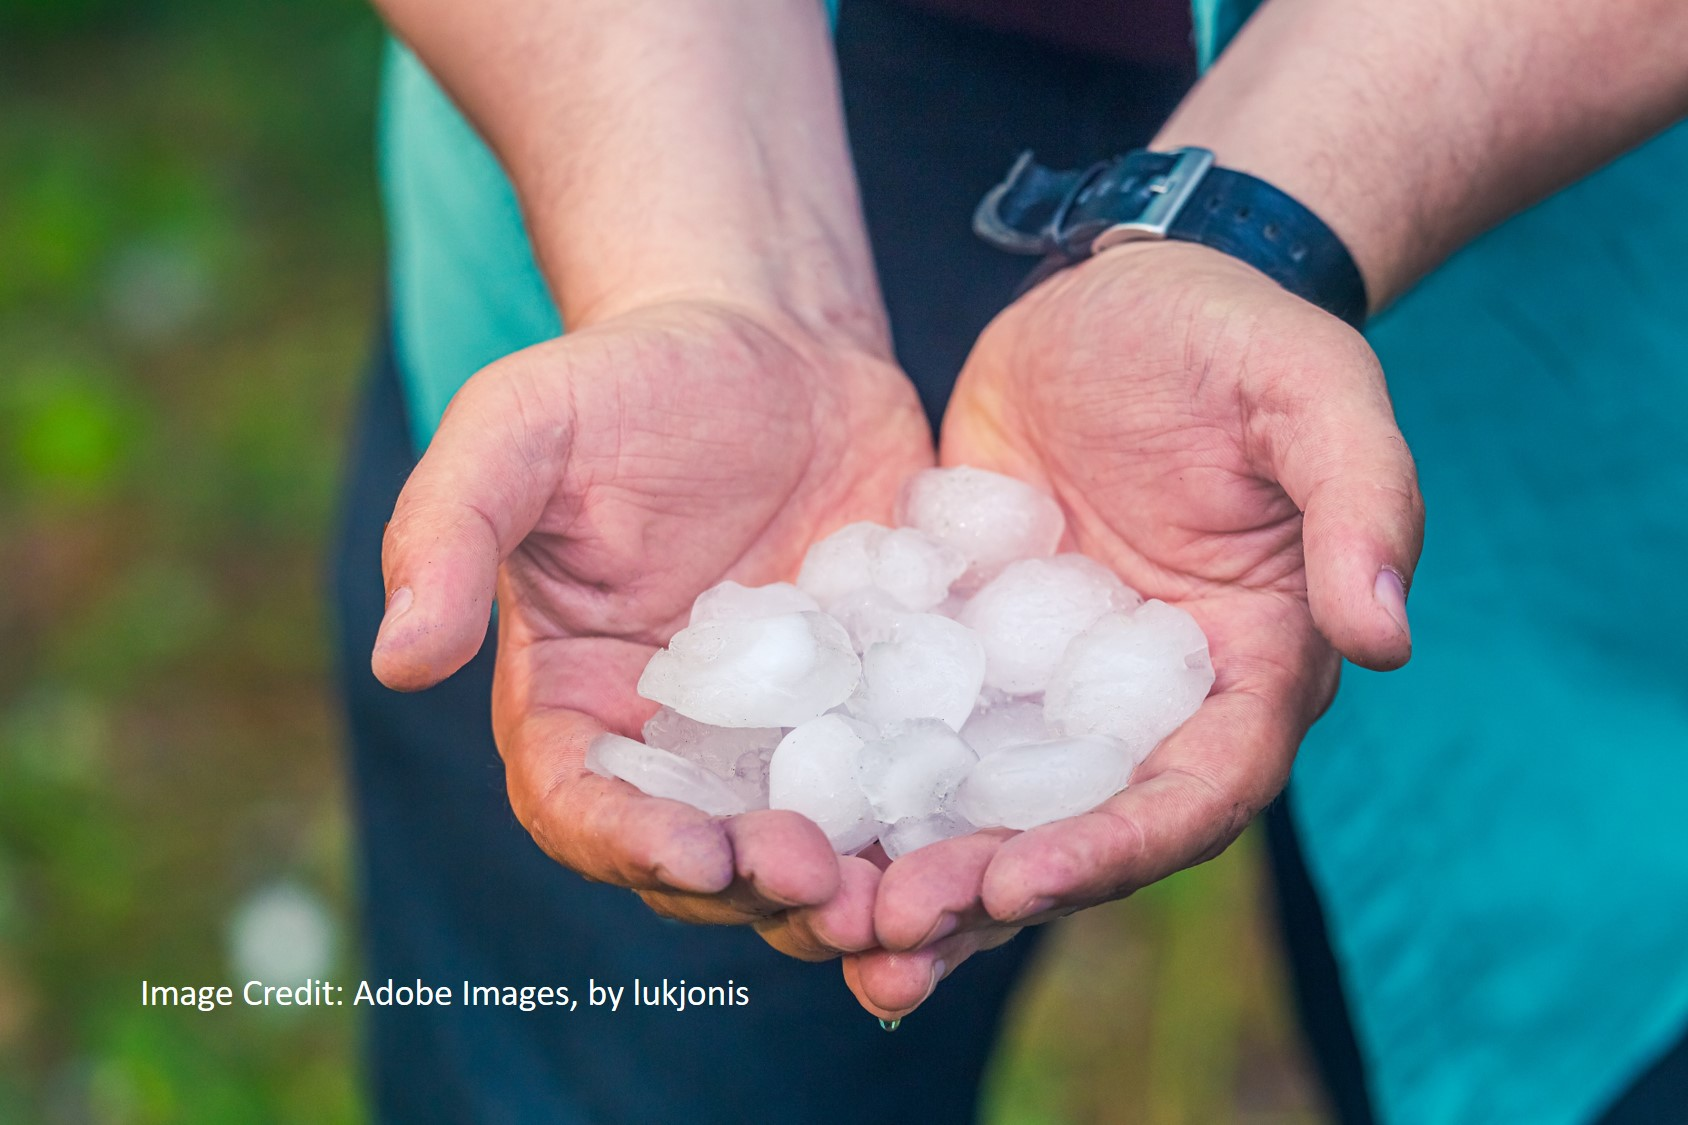 large hail stones in the hands of a man just after a hail storm